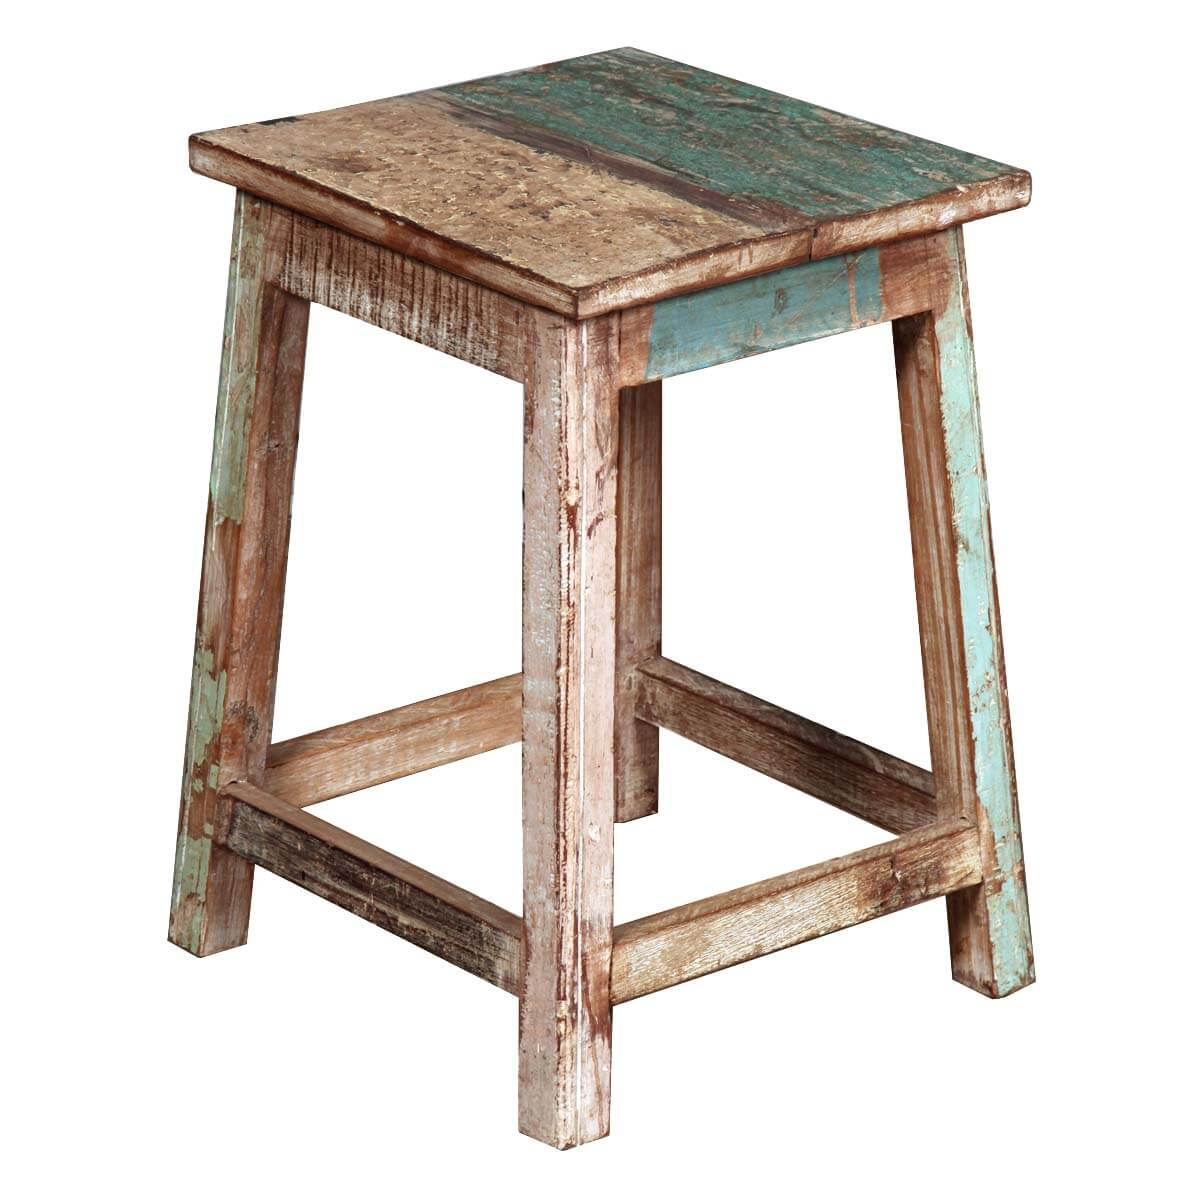 Appalachian rustic solid reclaimed wood square end table stool